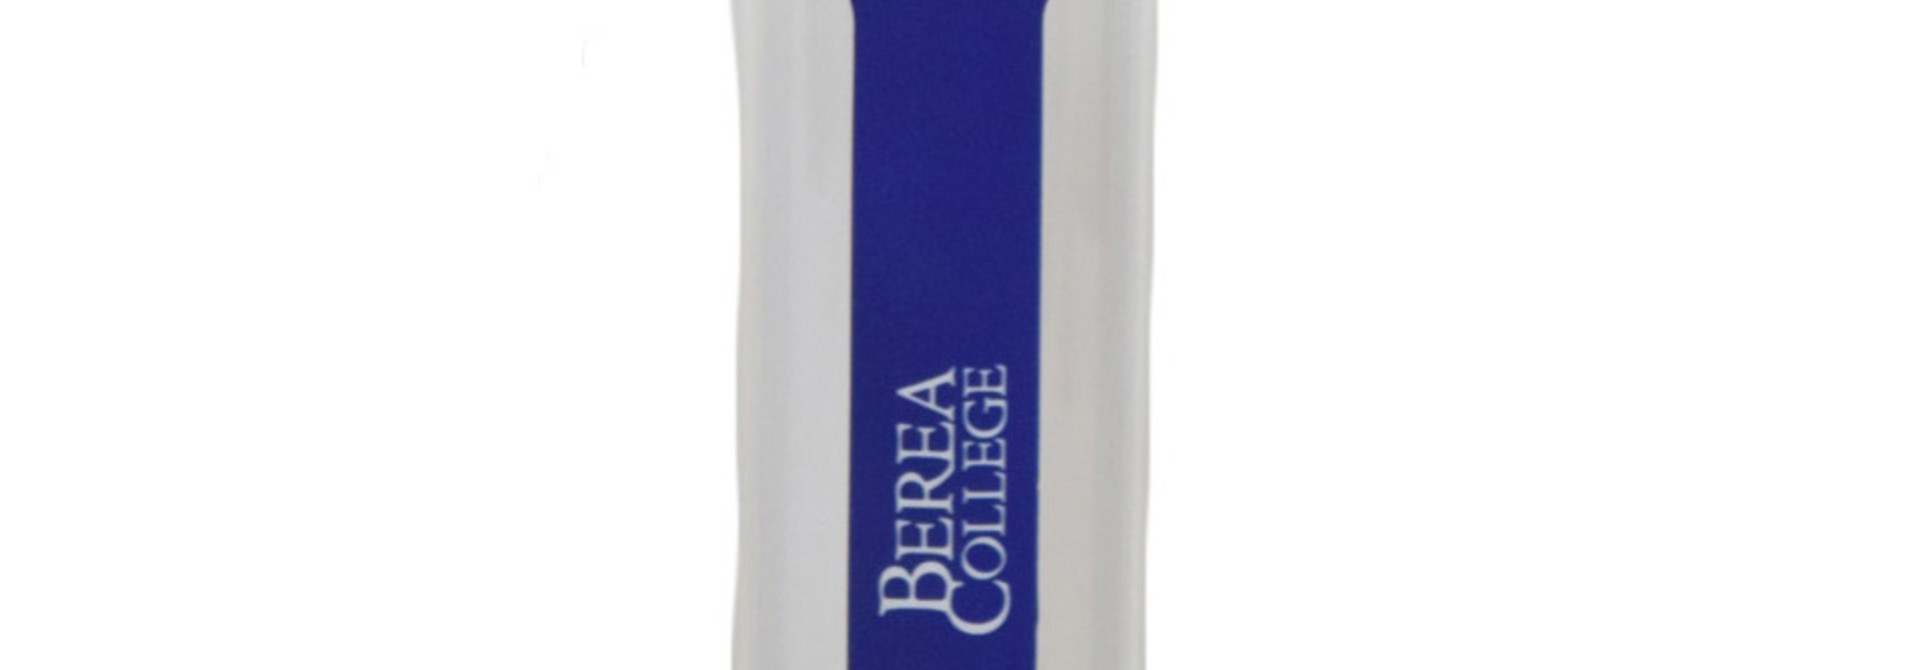 Berea Sleek Water Bottle